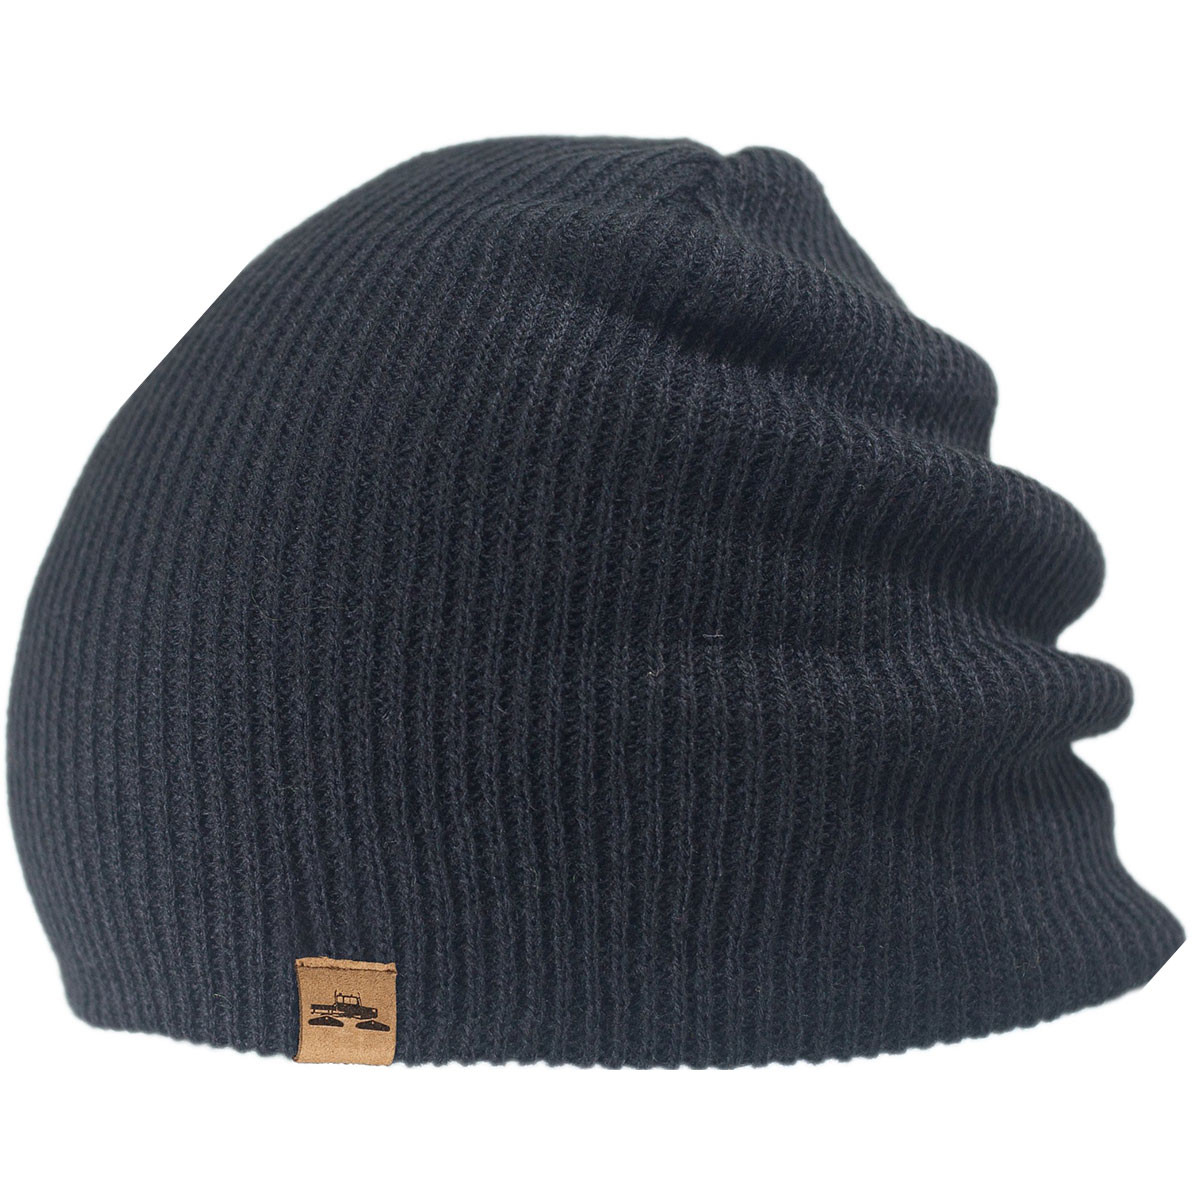 Spacecraft Offender Beanie - Black Marl ae49844b6915